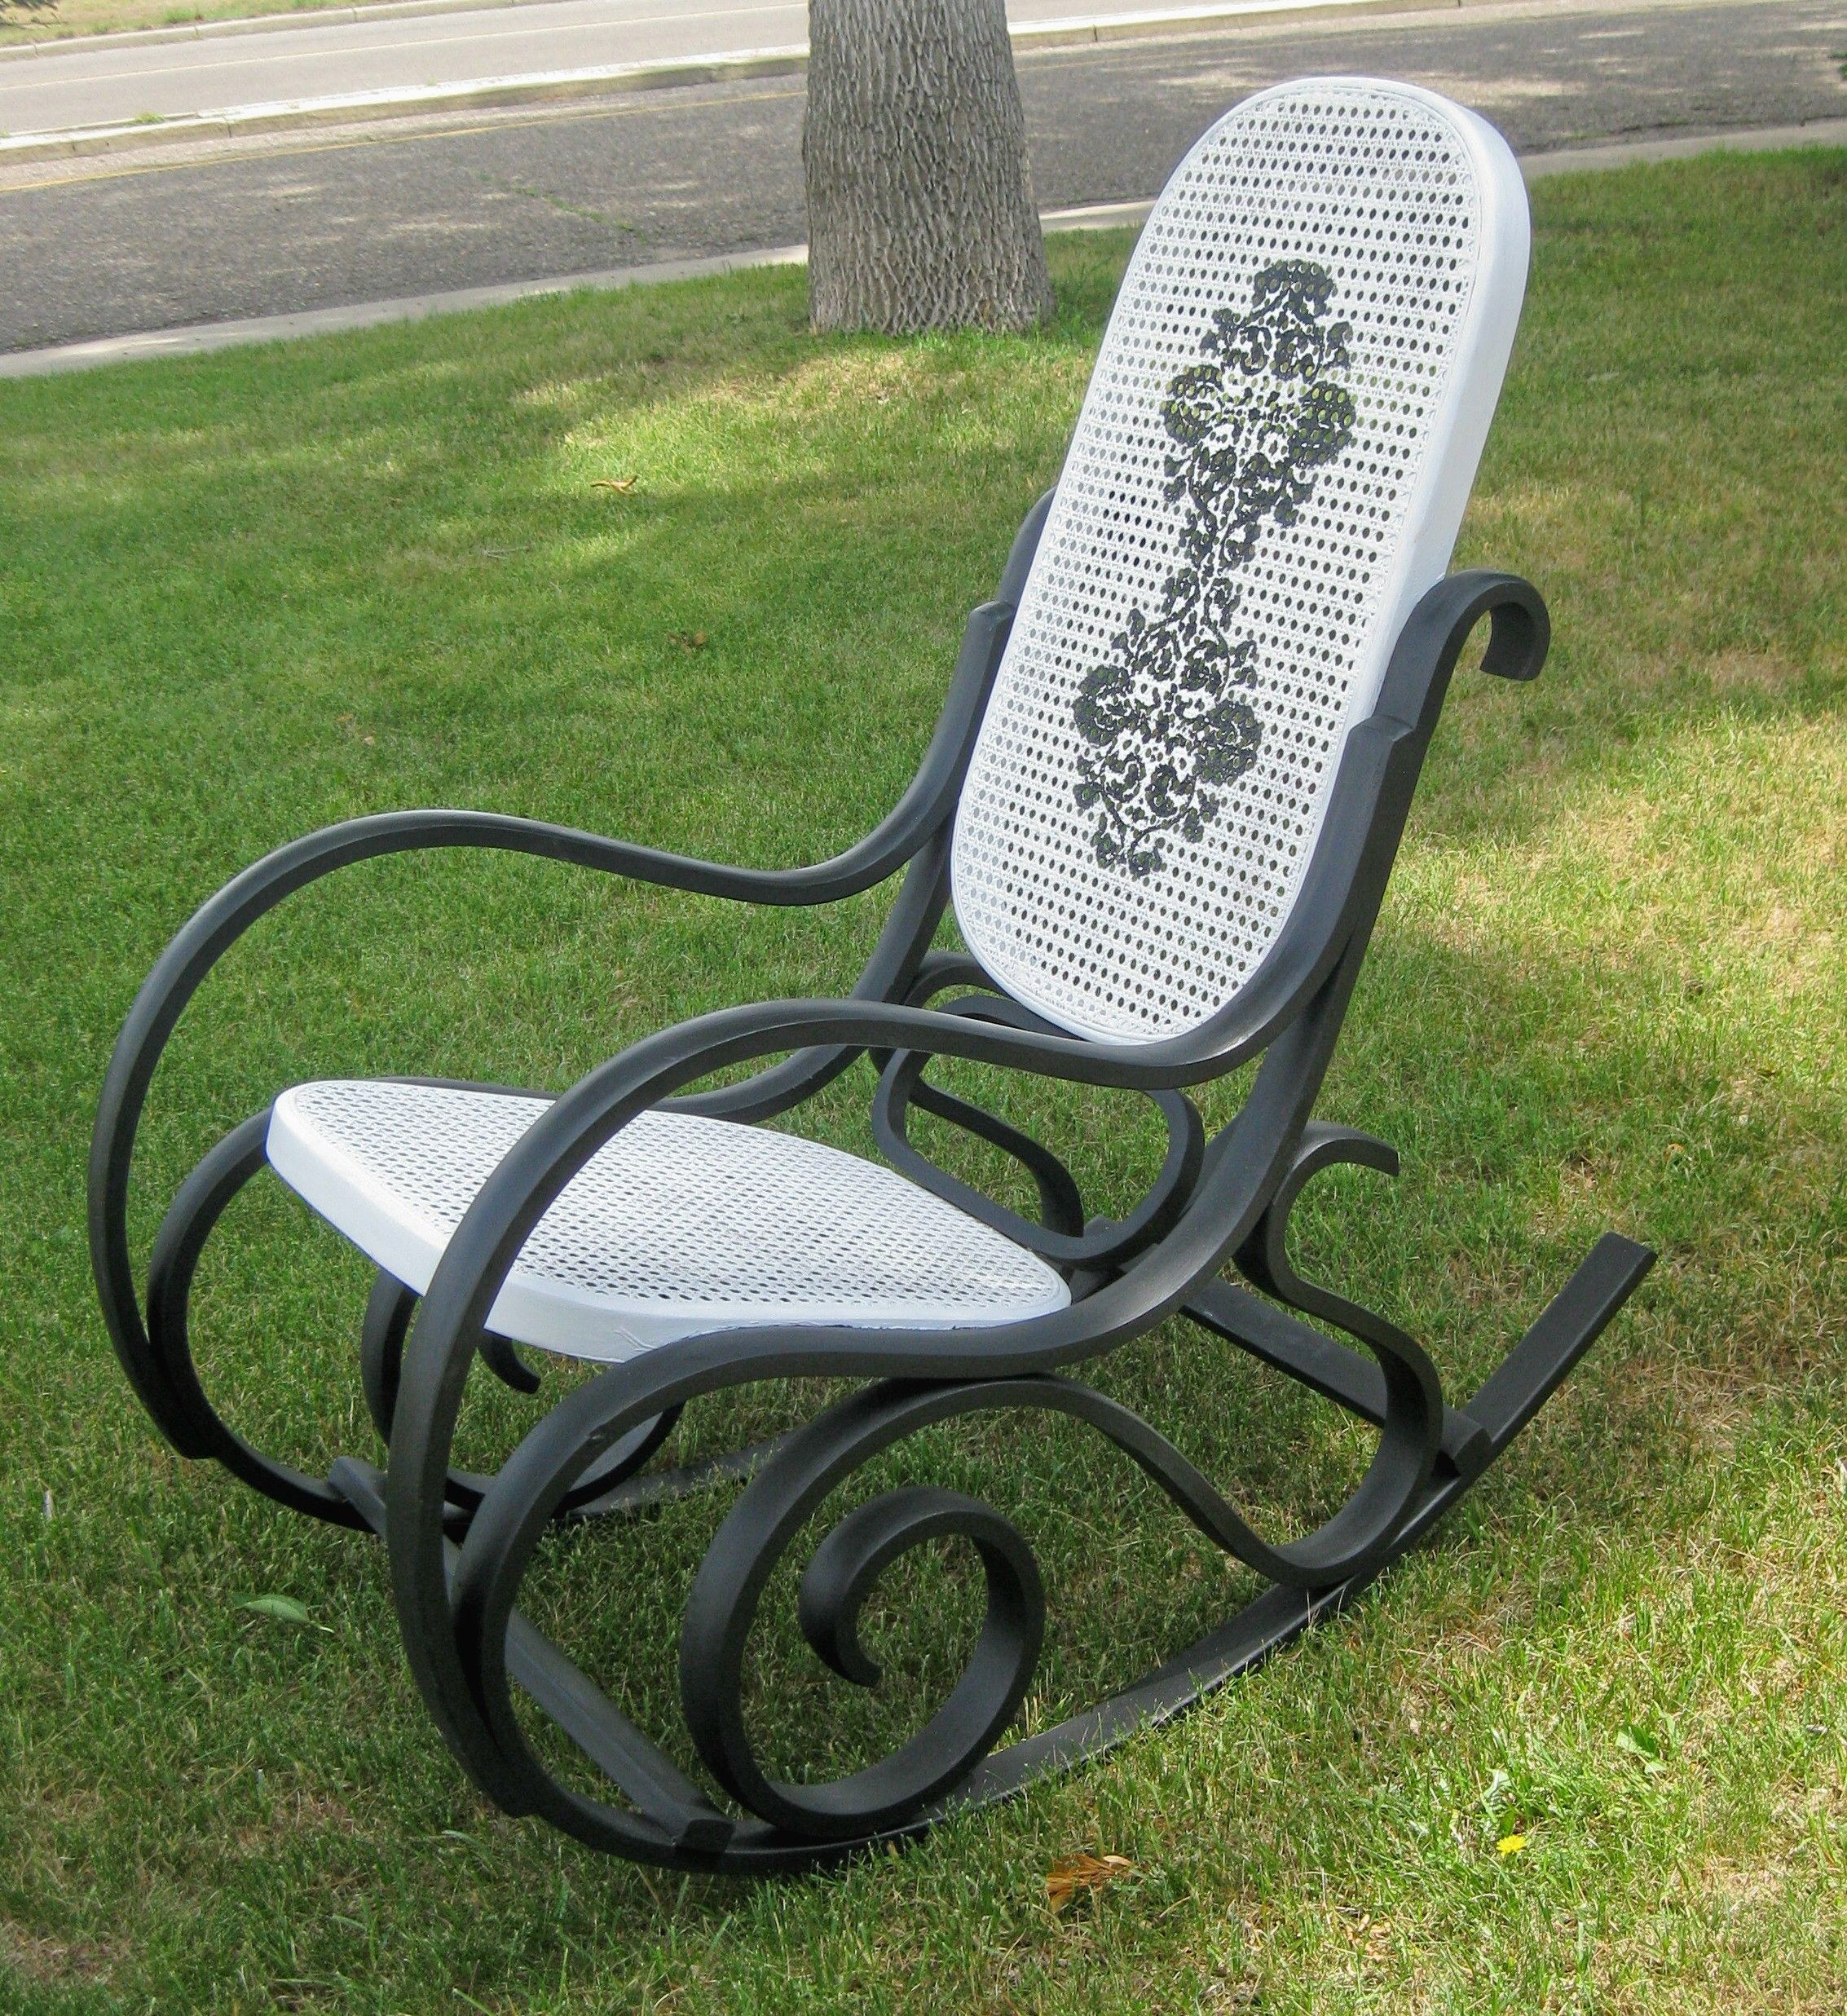 Dream Rocker Hammock Chair Target Industrial Chairs Annie Sloan Graphite And Old White Stencilled